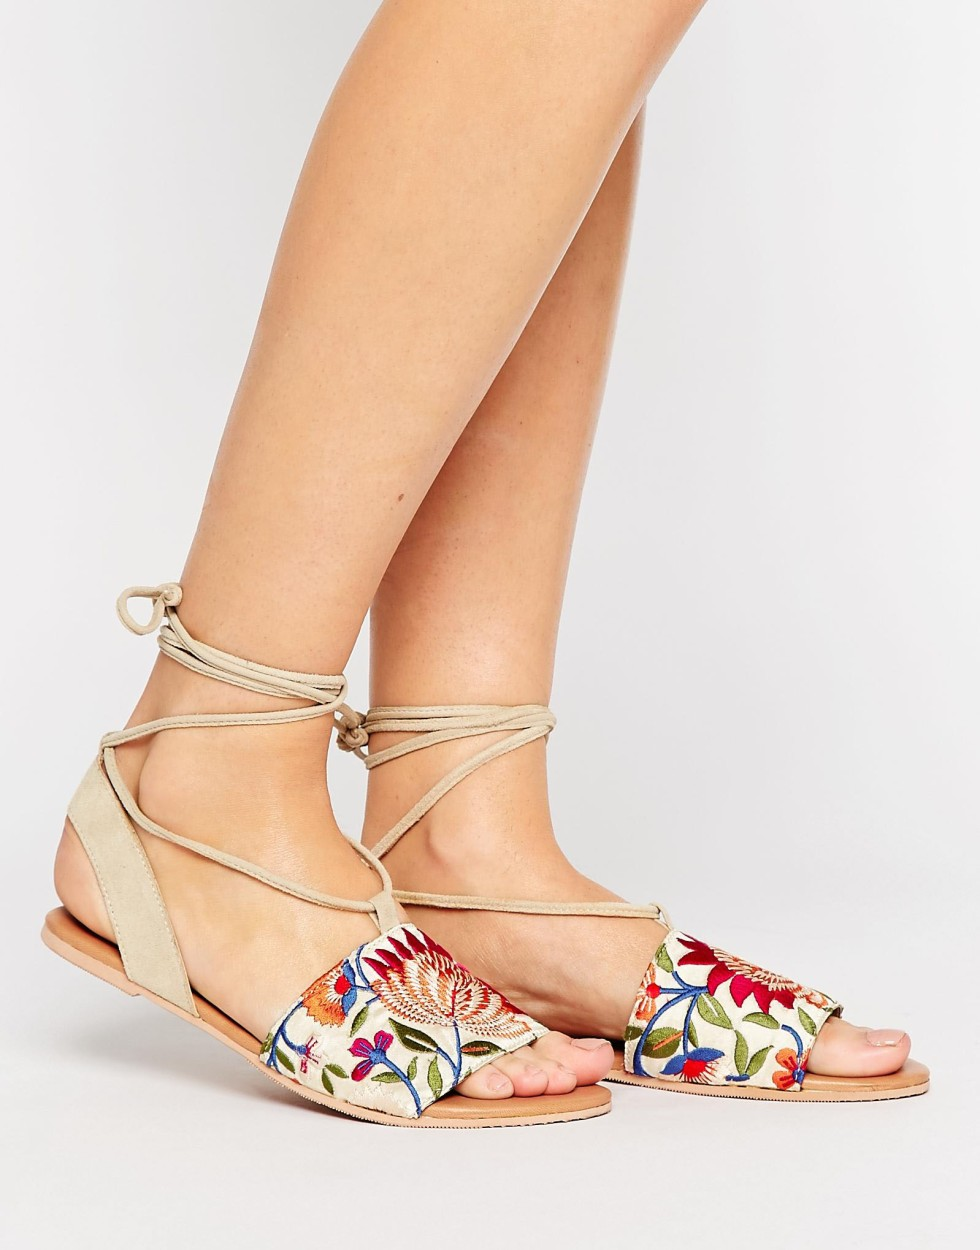 ASOS embroidered sandals